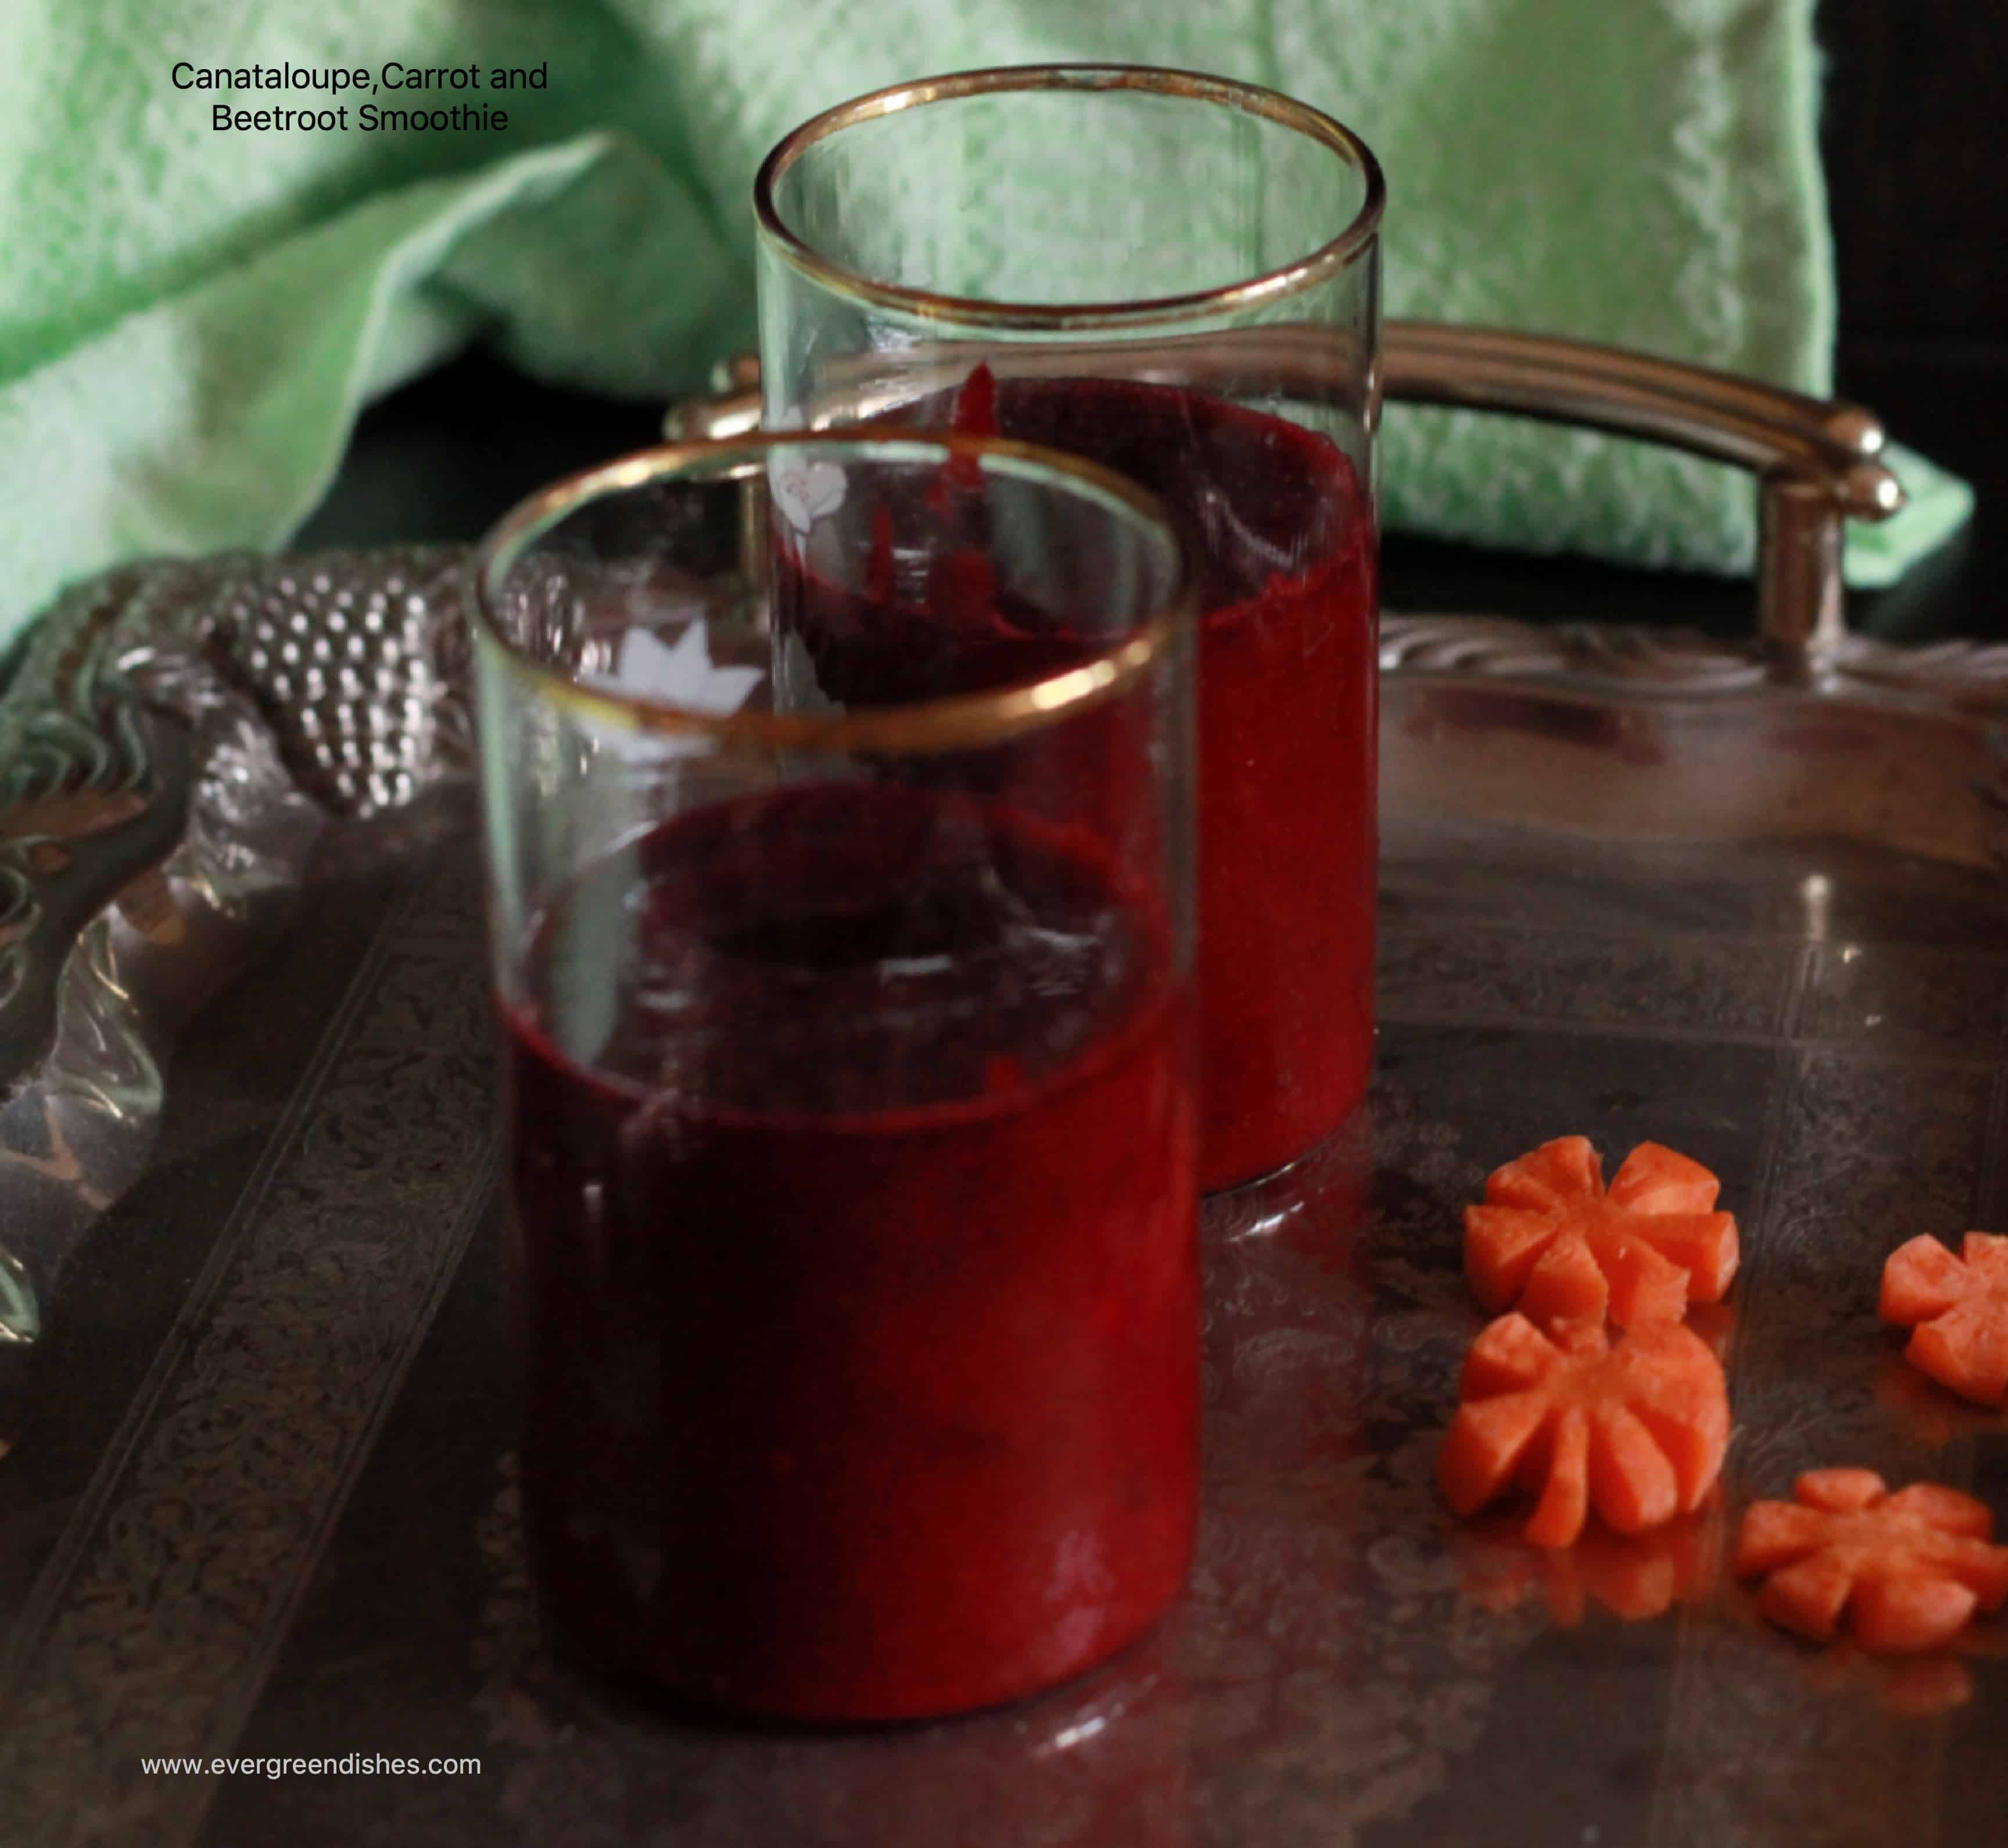 cantaloupe, carrot and beetroot smoothie